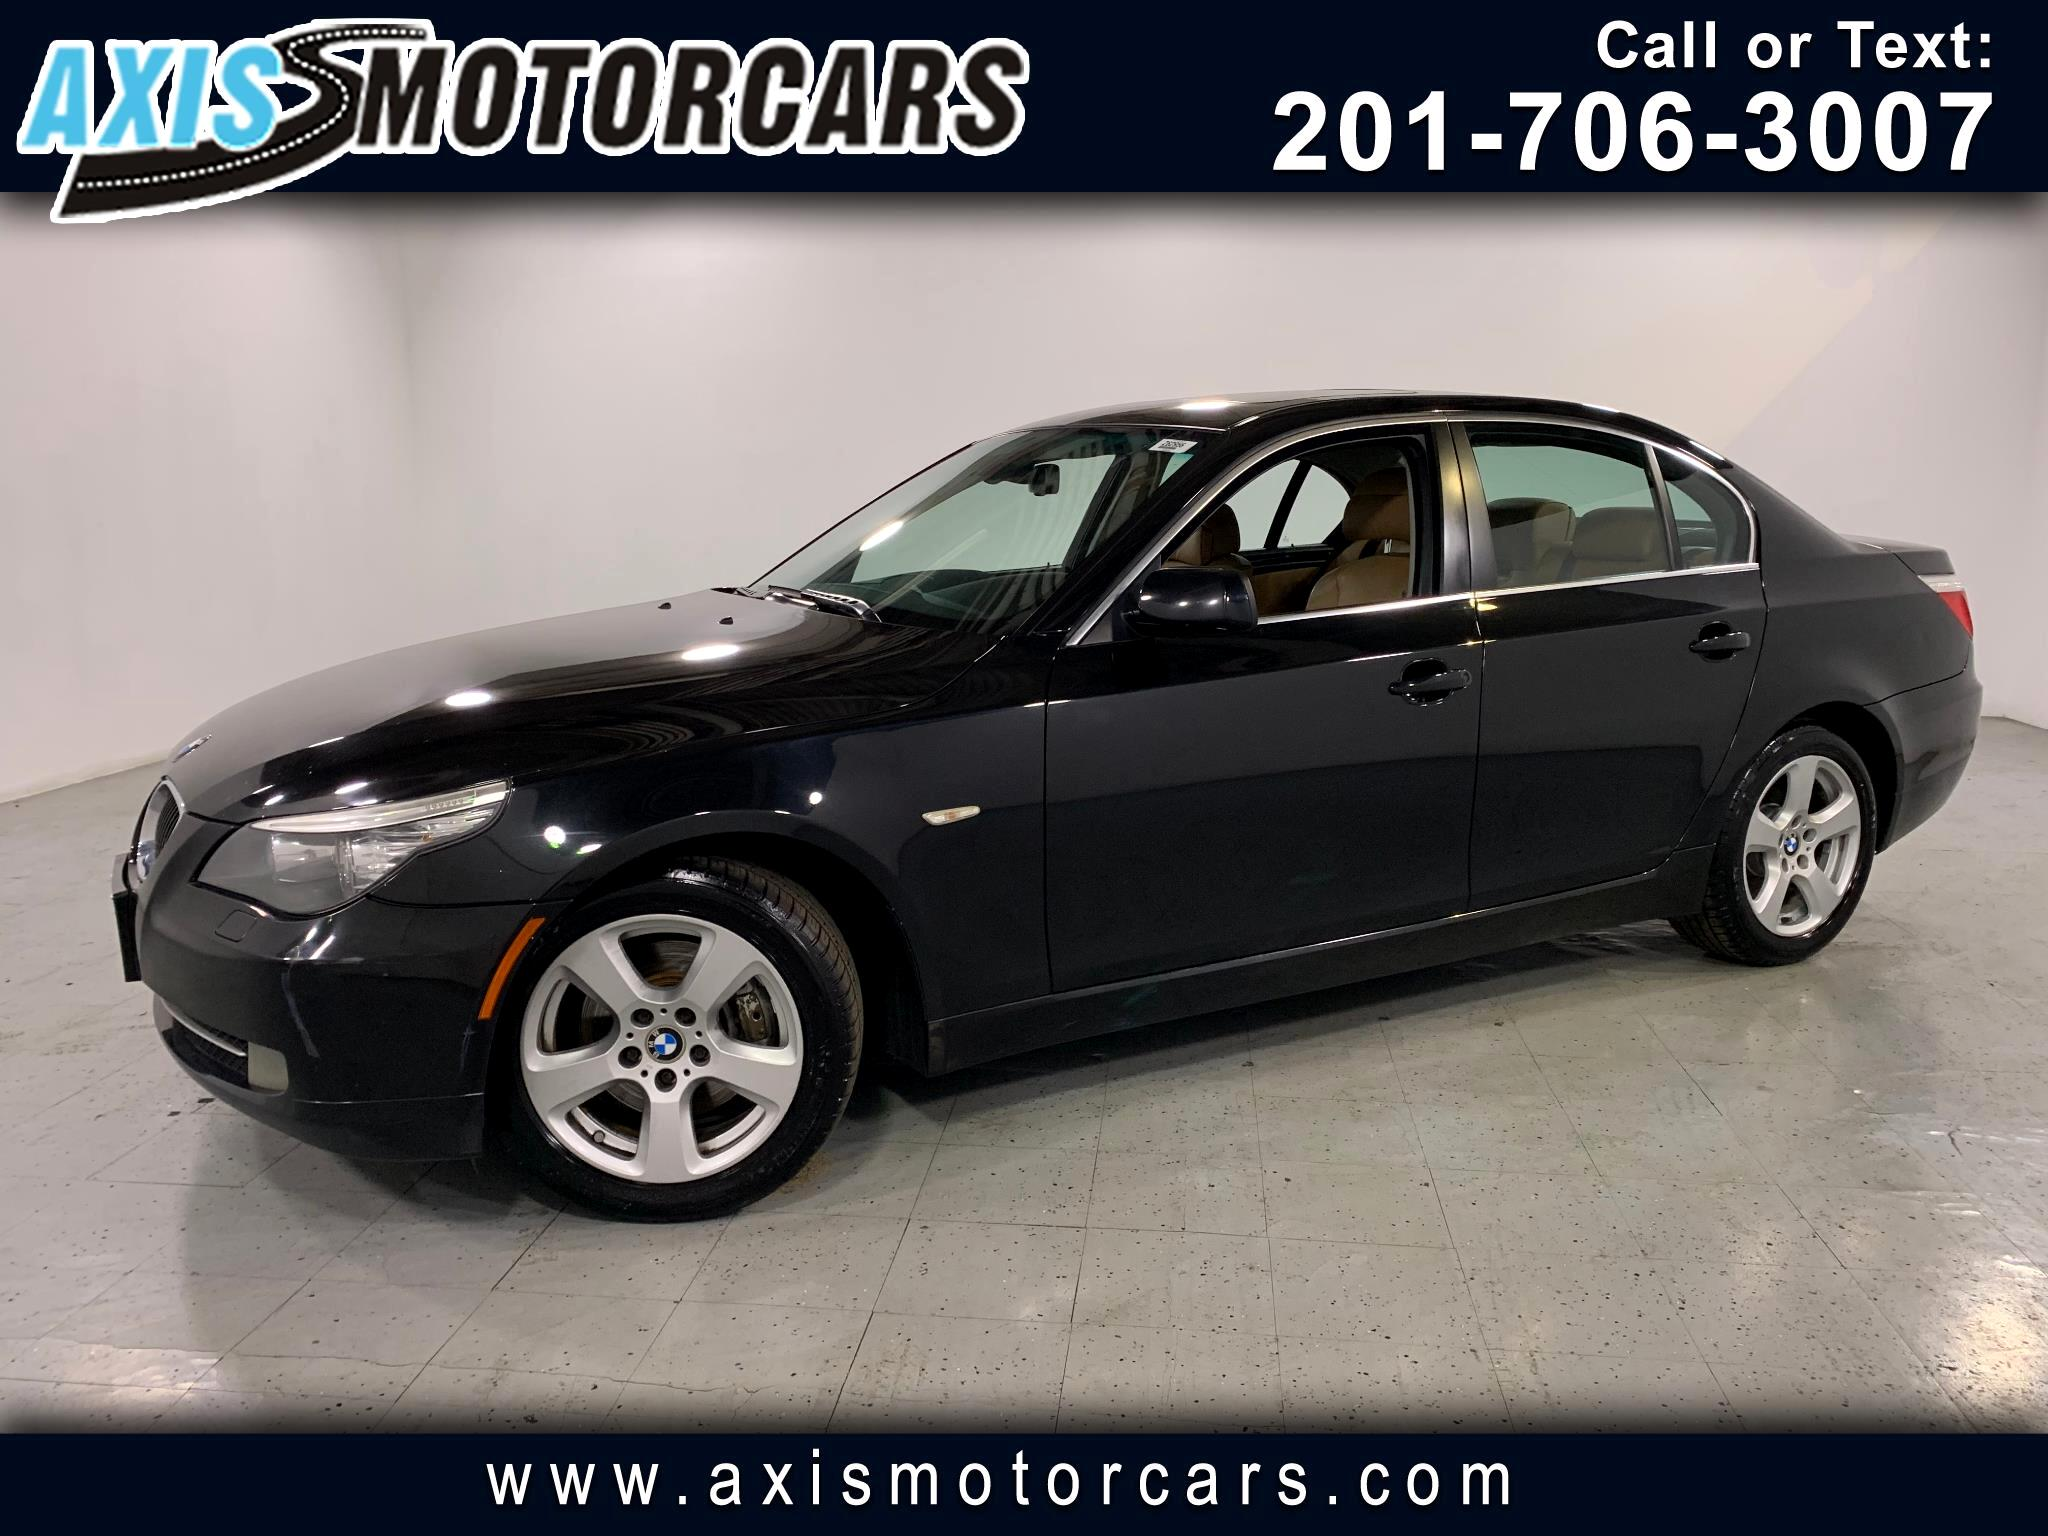 2008 BMW 535xi w/Navigation Sunroof Leather